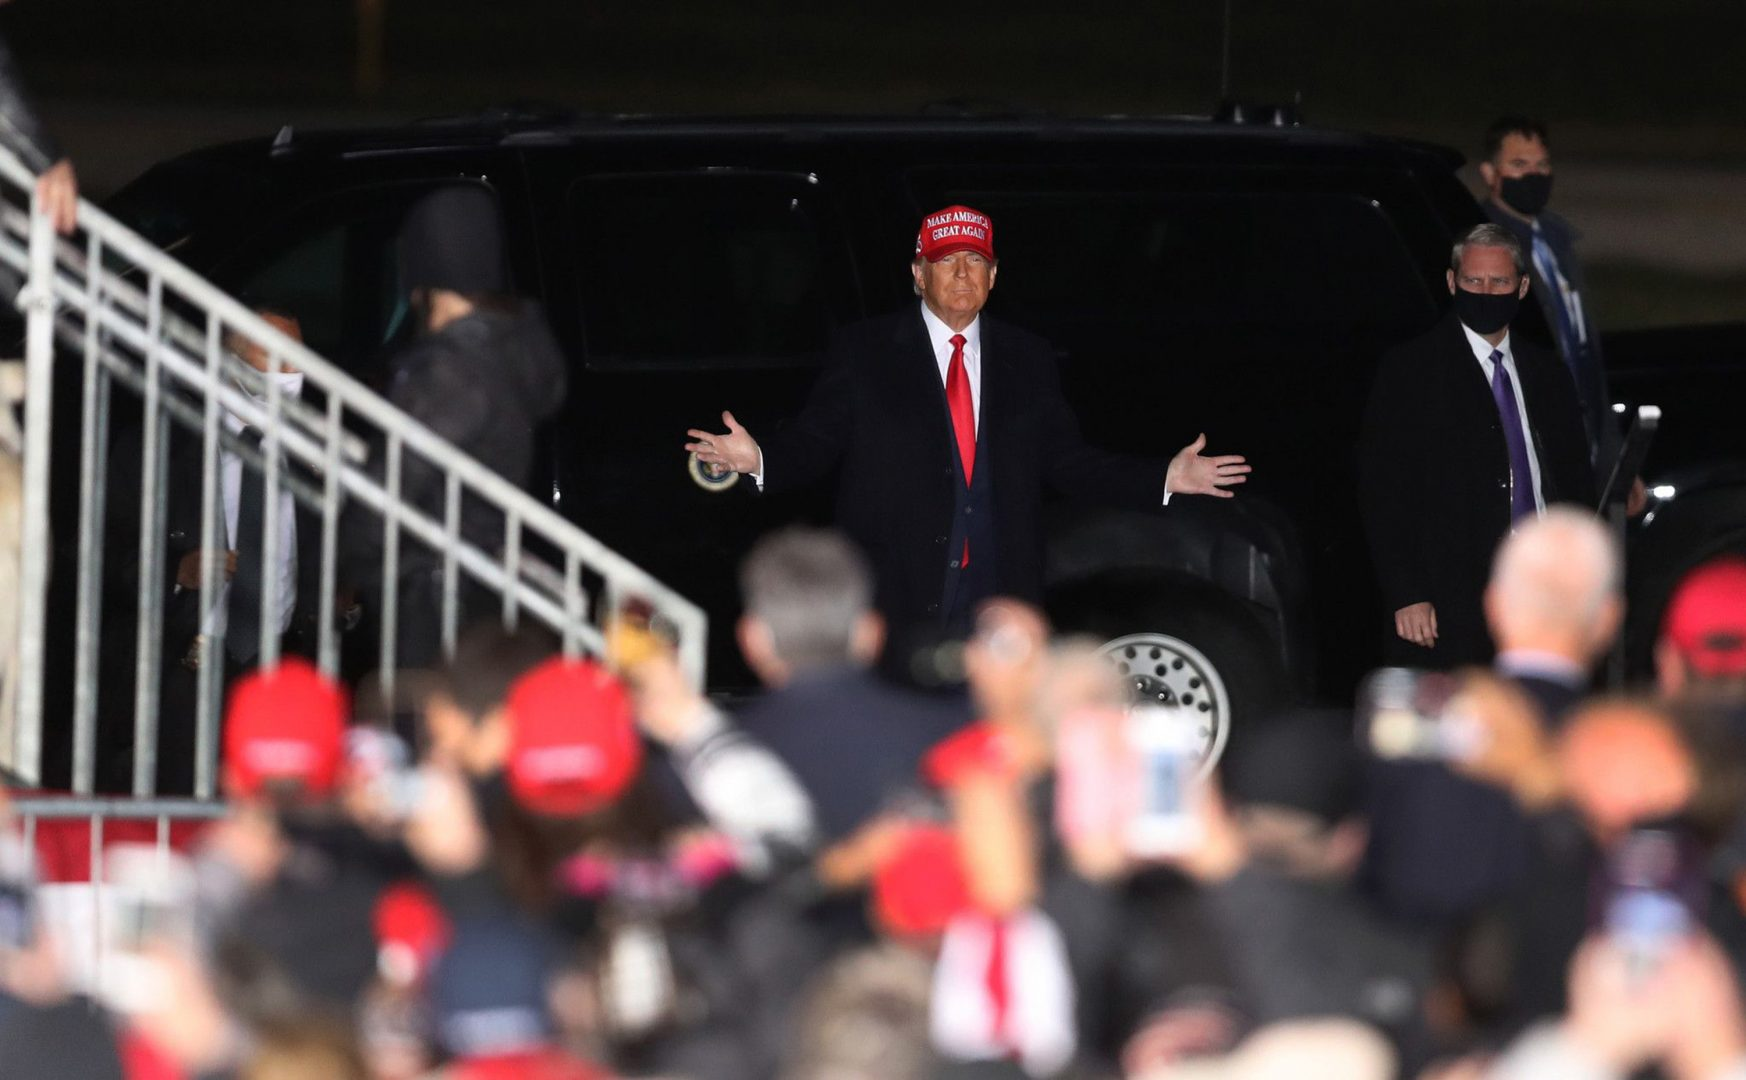 President Donald Trump arrives before speaking at a campaign rally at Southern Wisconsin Regional Airport in Janesville, Wisconsin on Saturday, Oct. 17, 2020.